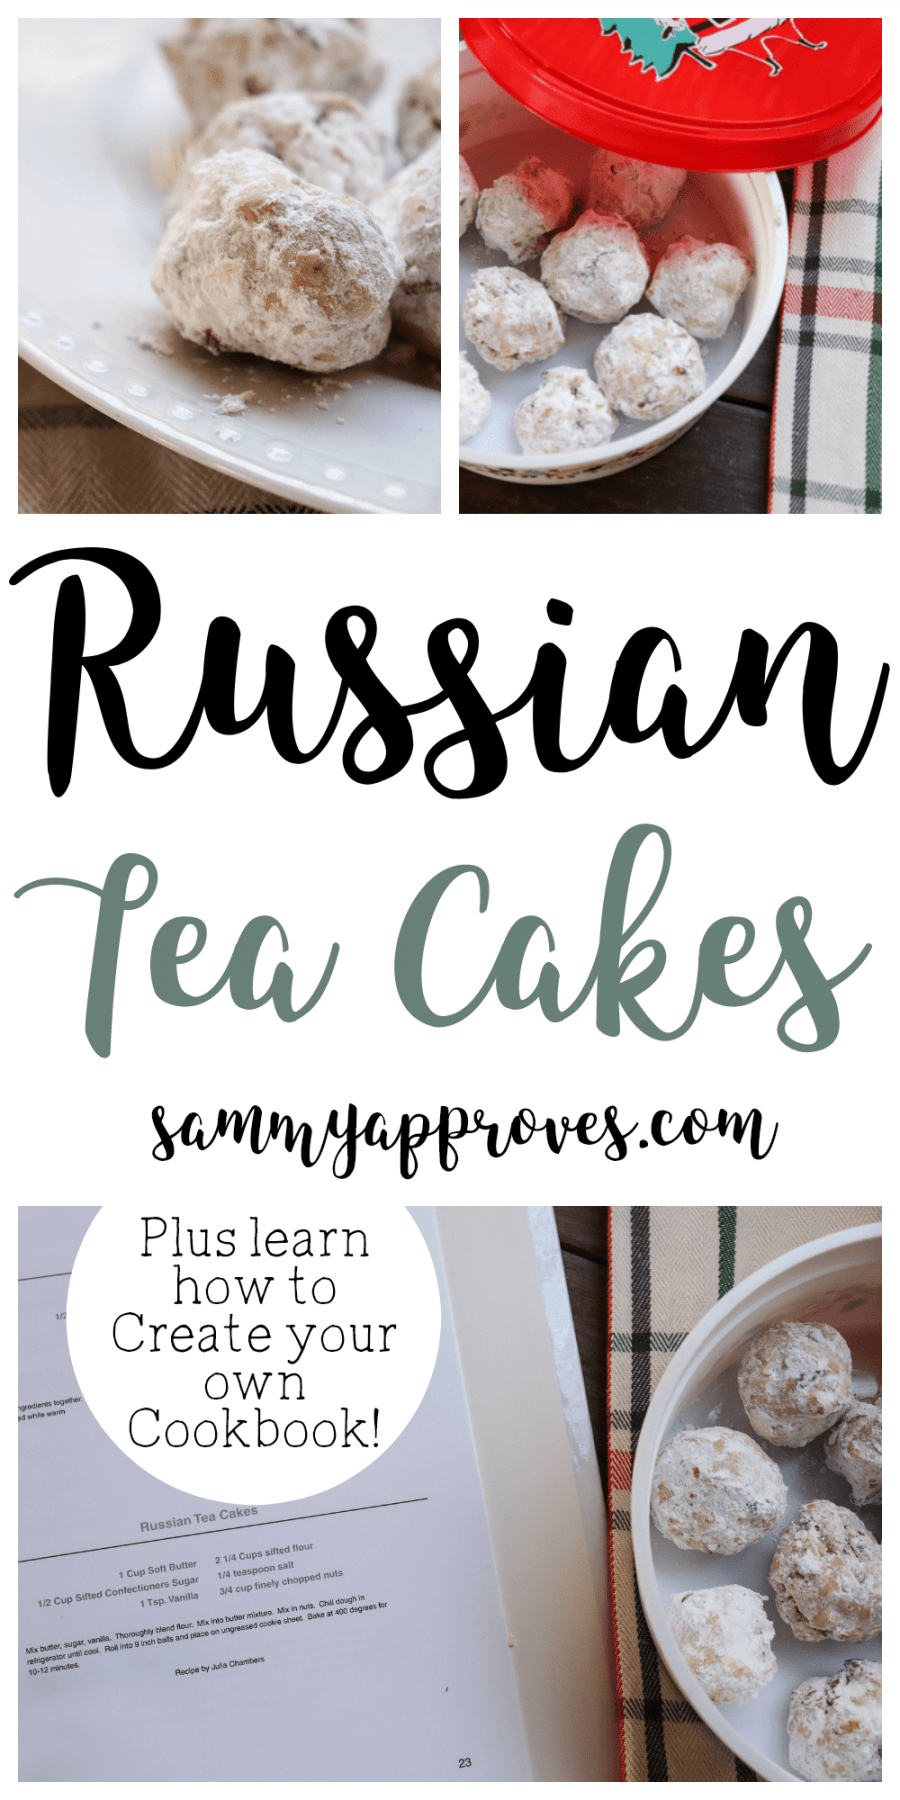 Russian Tea Cakes with CreateMyCookbook